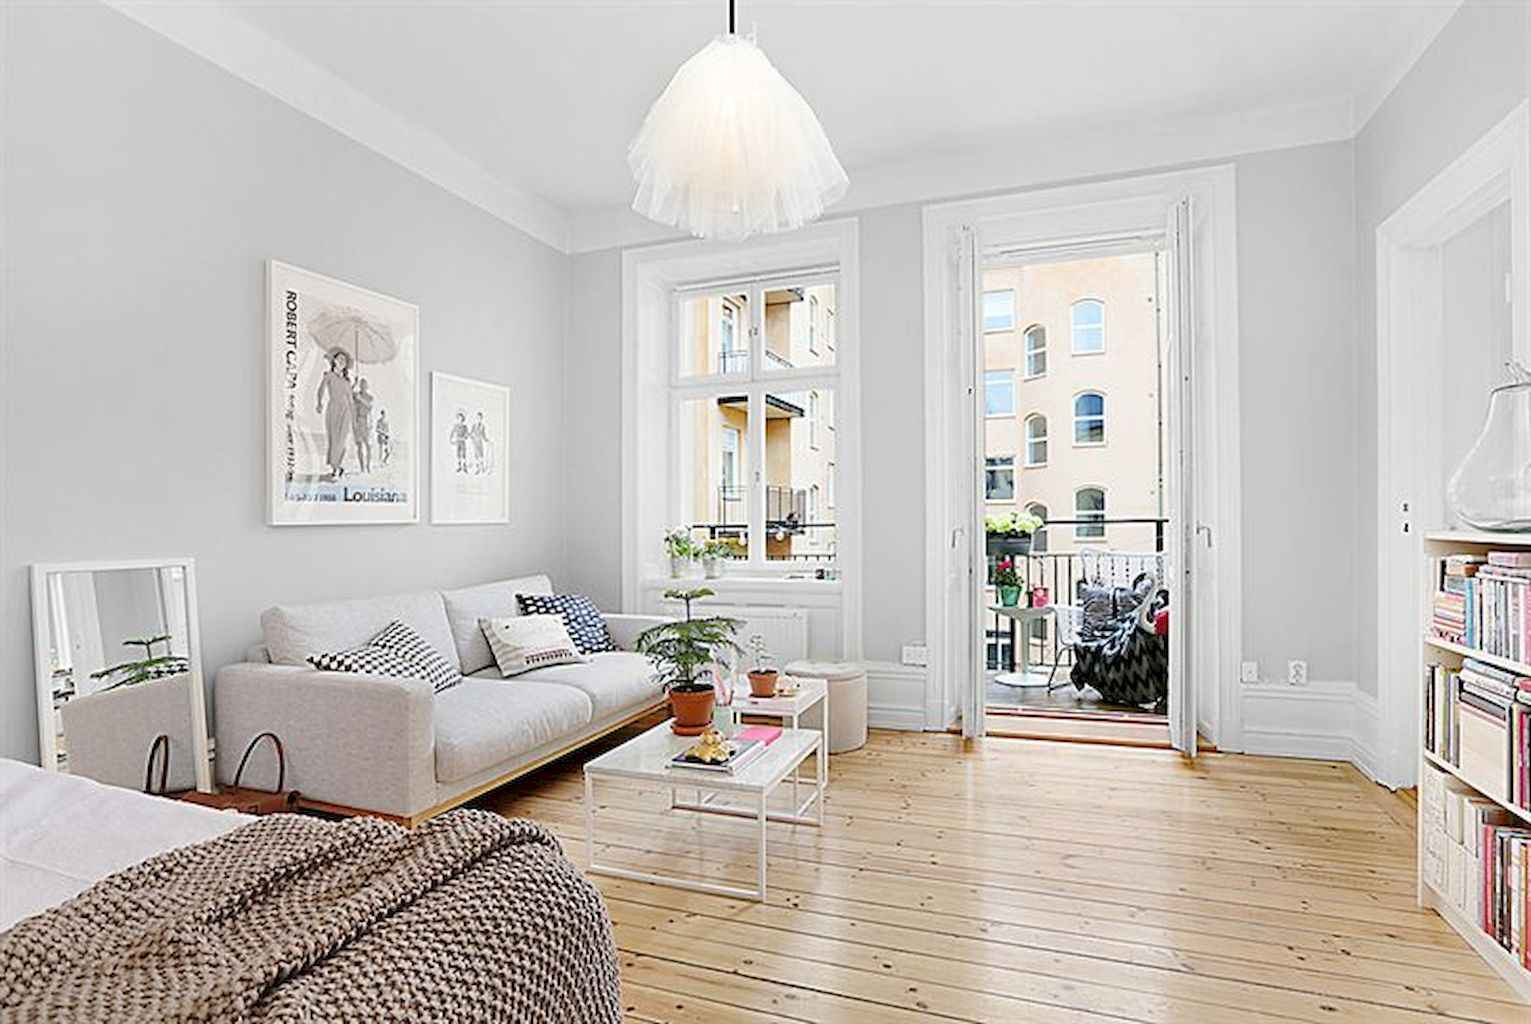 Cool small apartment decorating ideas on a budget (15)